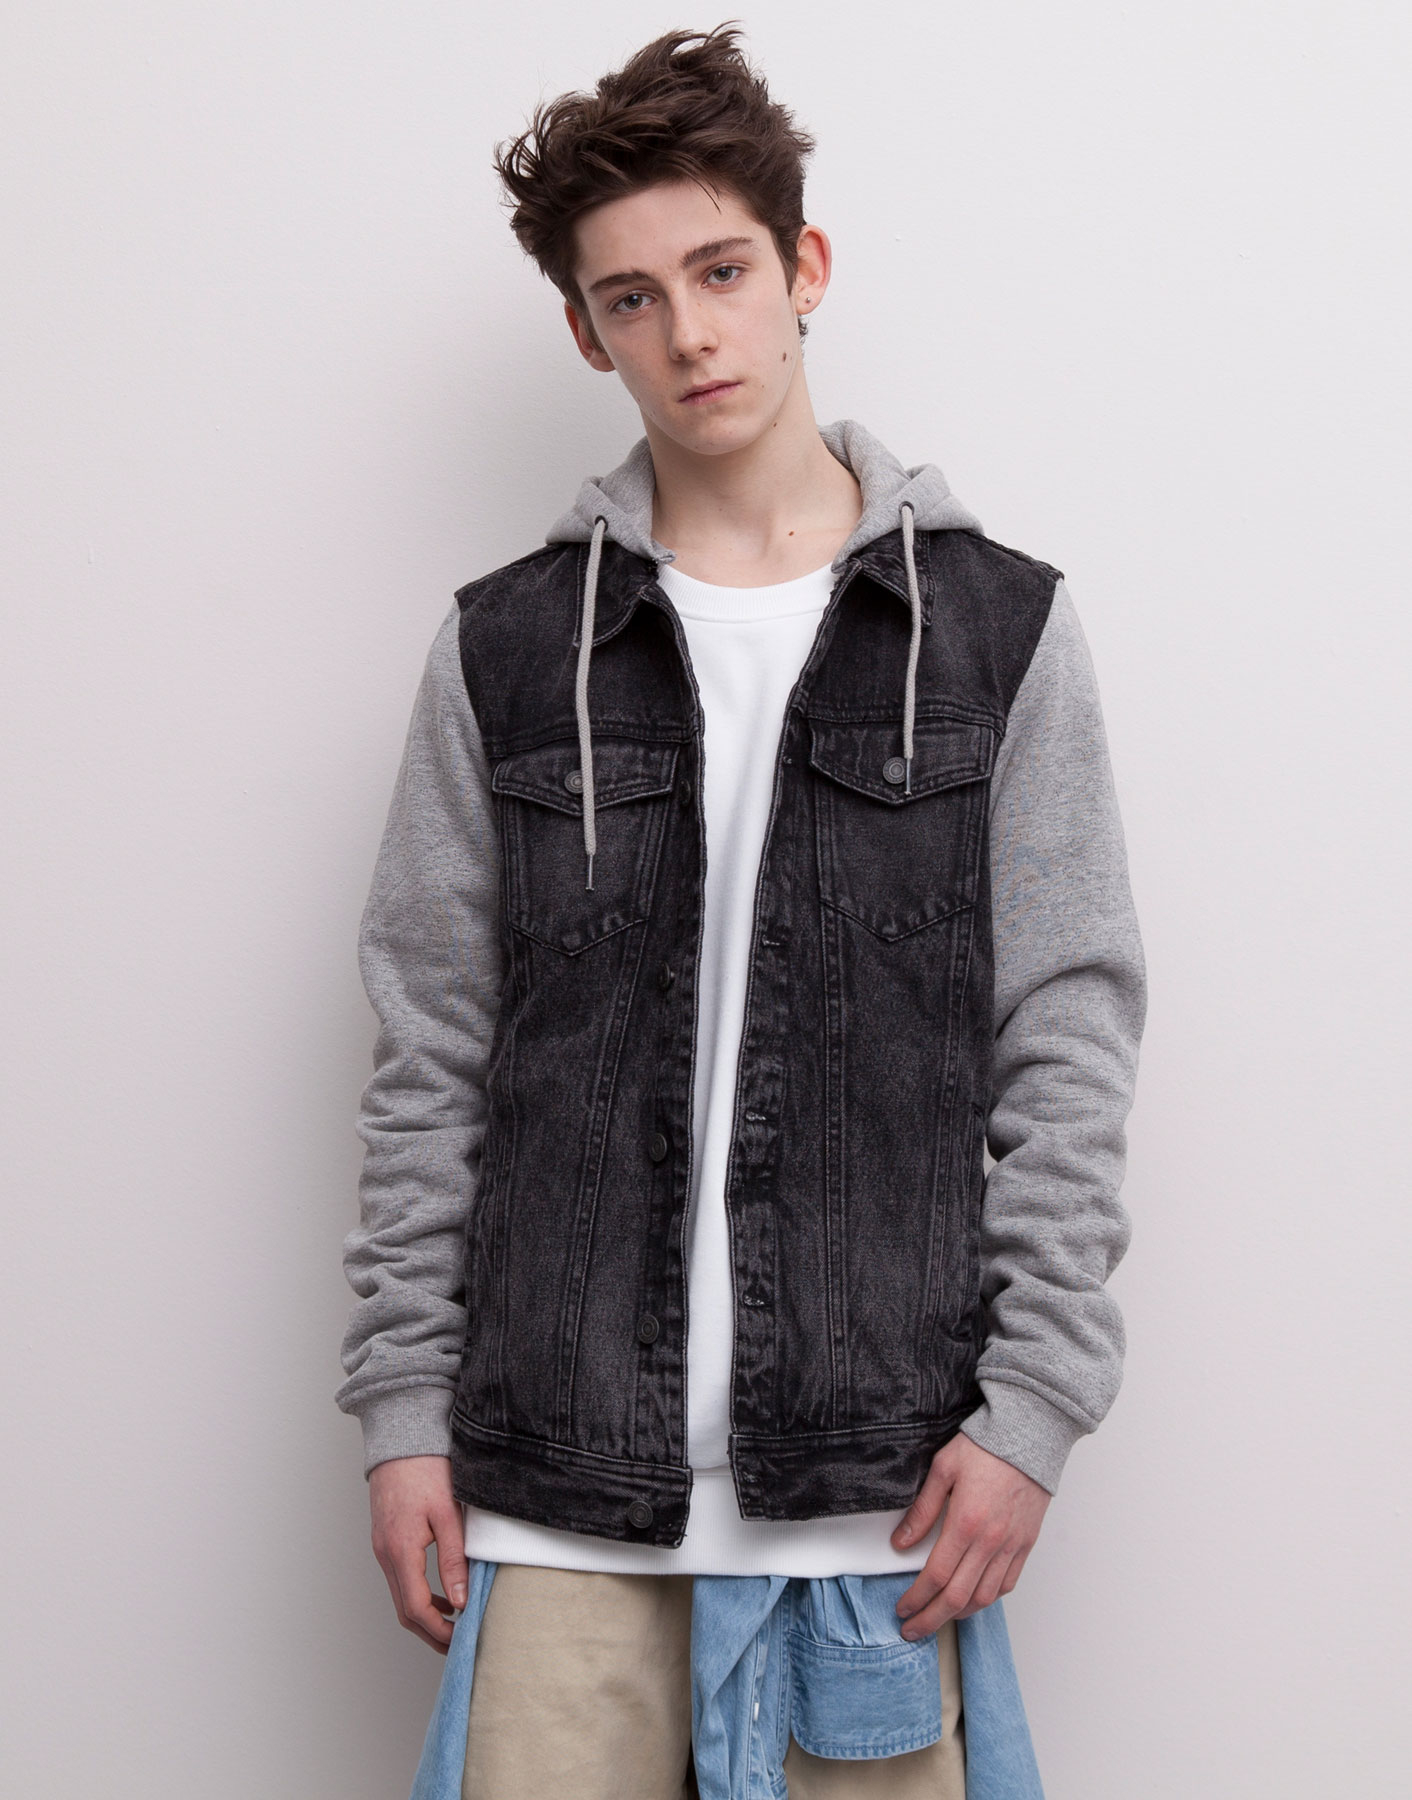 Pull&bear Combined Denim Jacket With Velour Sleeves And ...